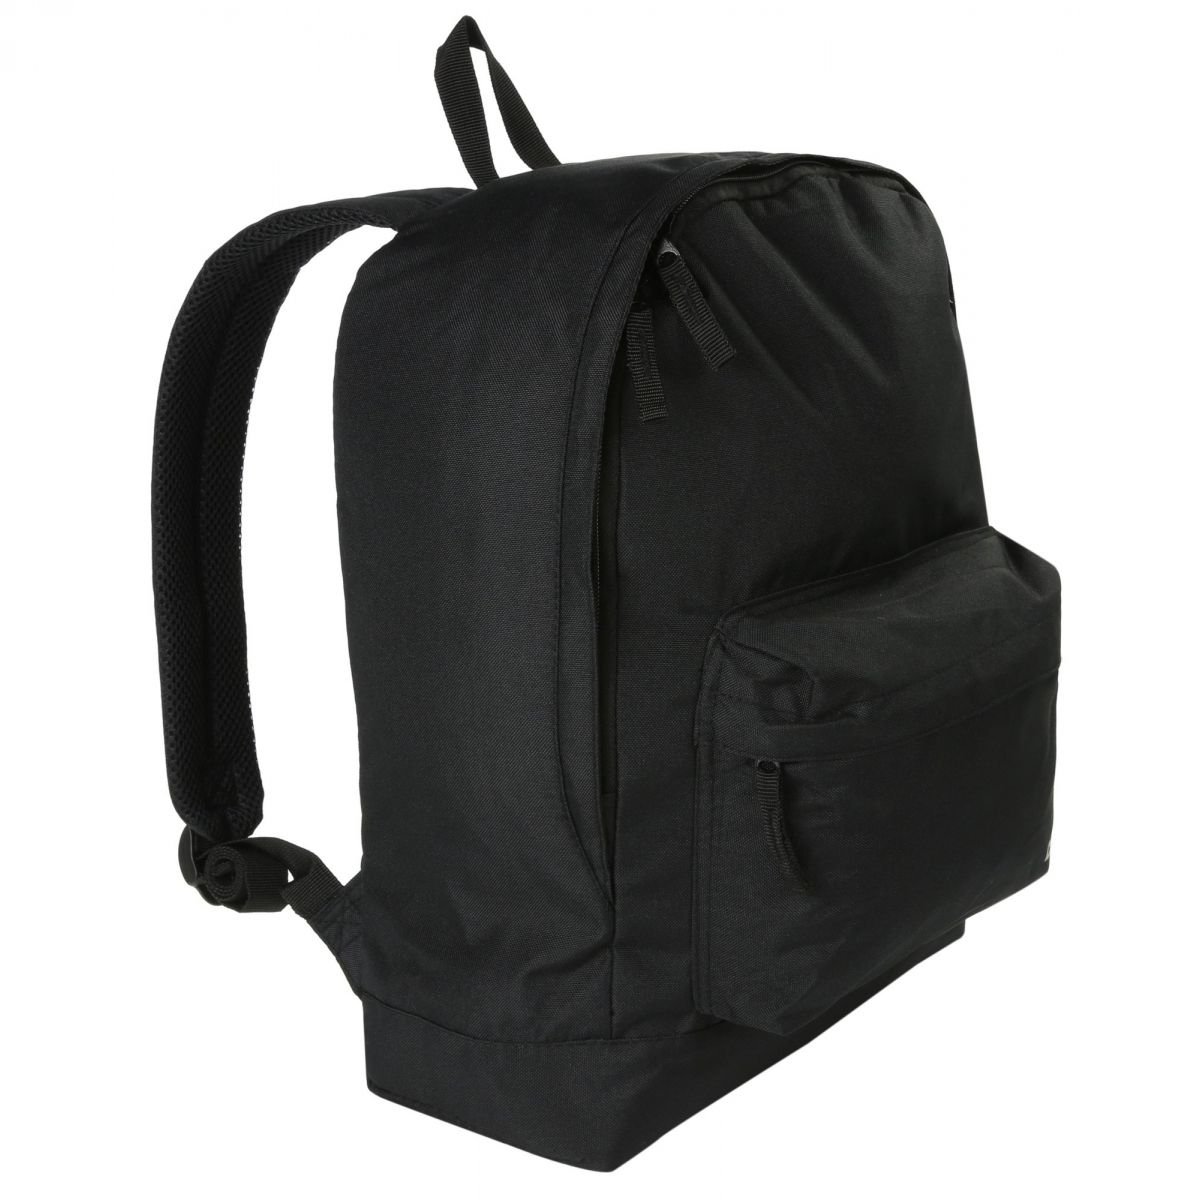 20l School Bag - Ruksak